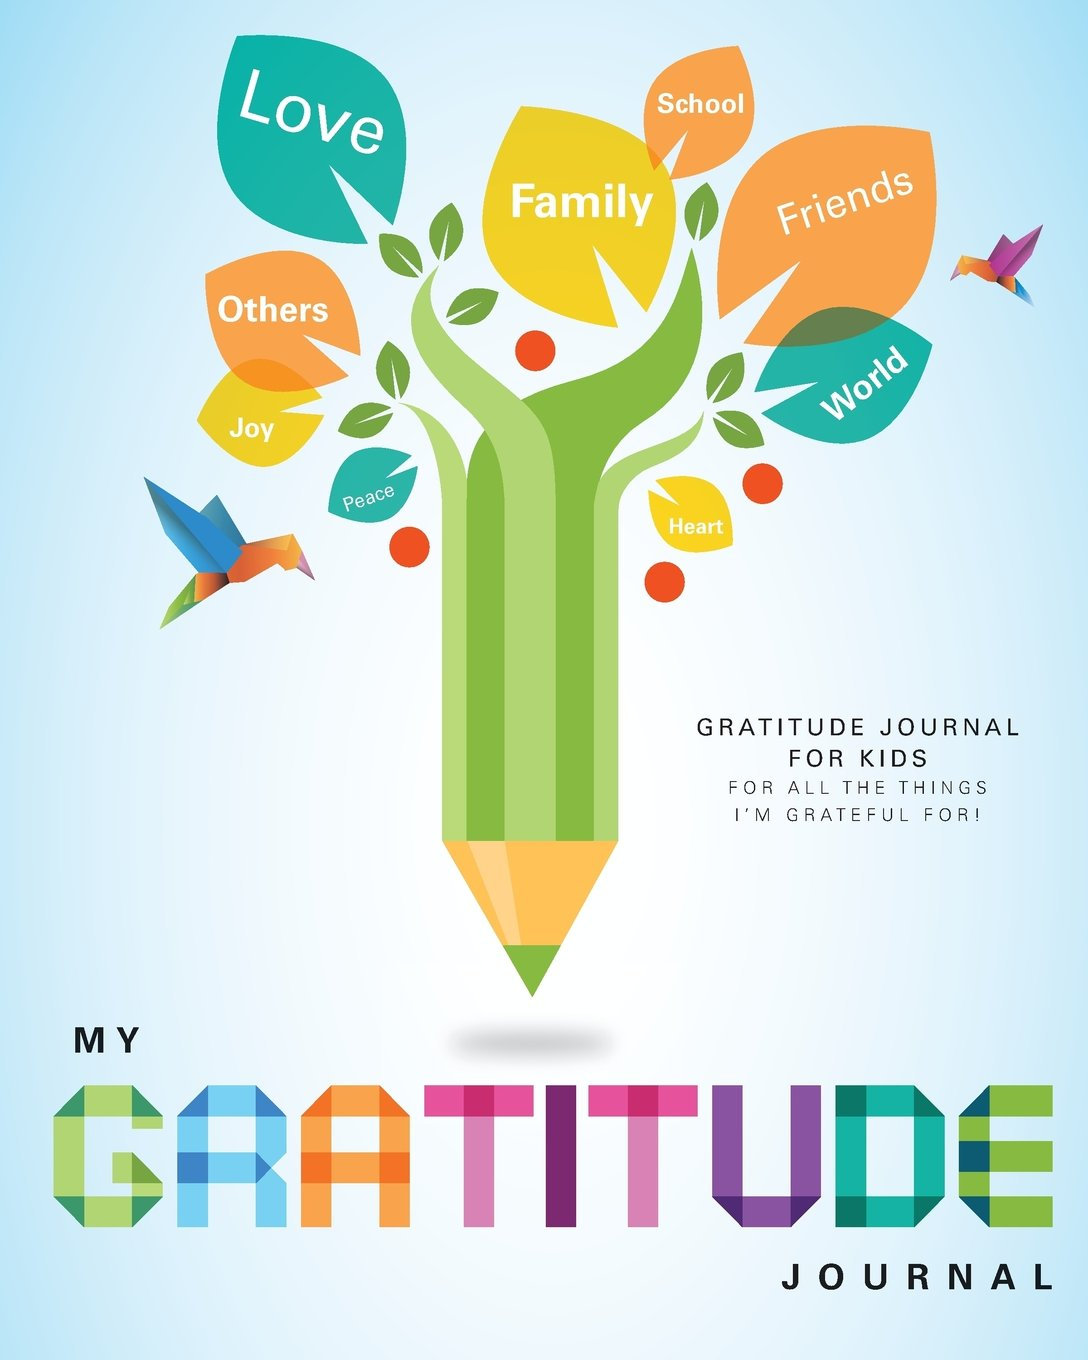 Gratitude Journal for Kids will help teach your kids to be grateful for all things in life